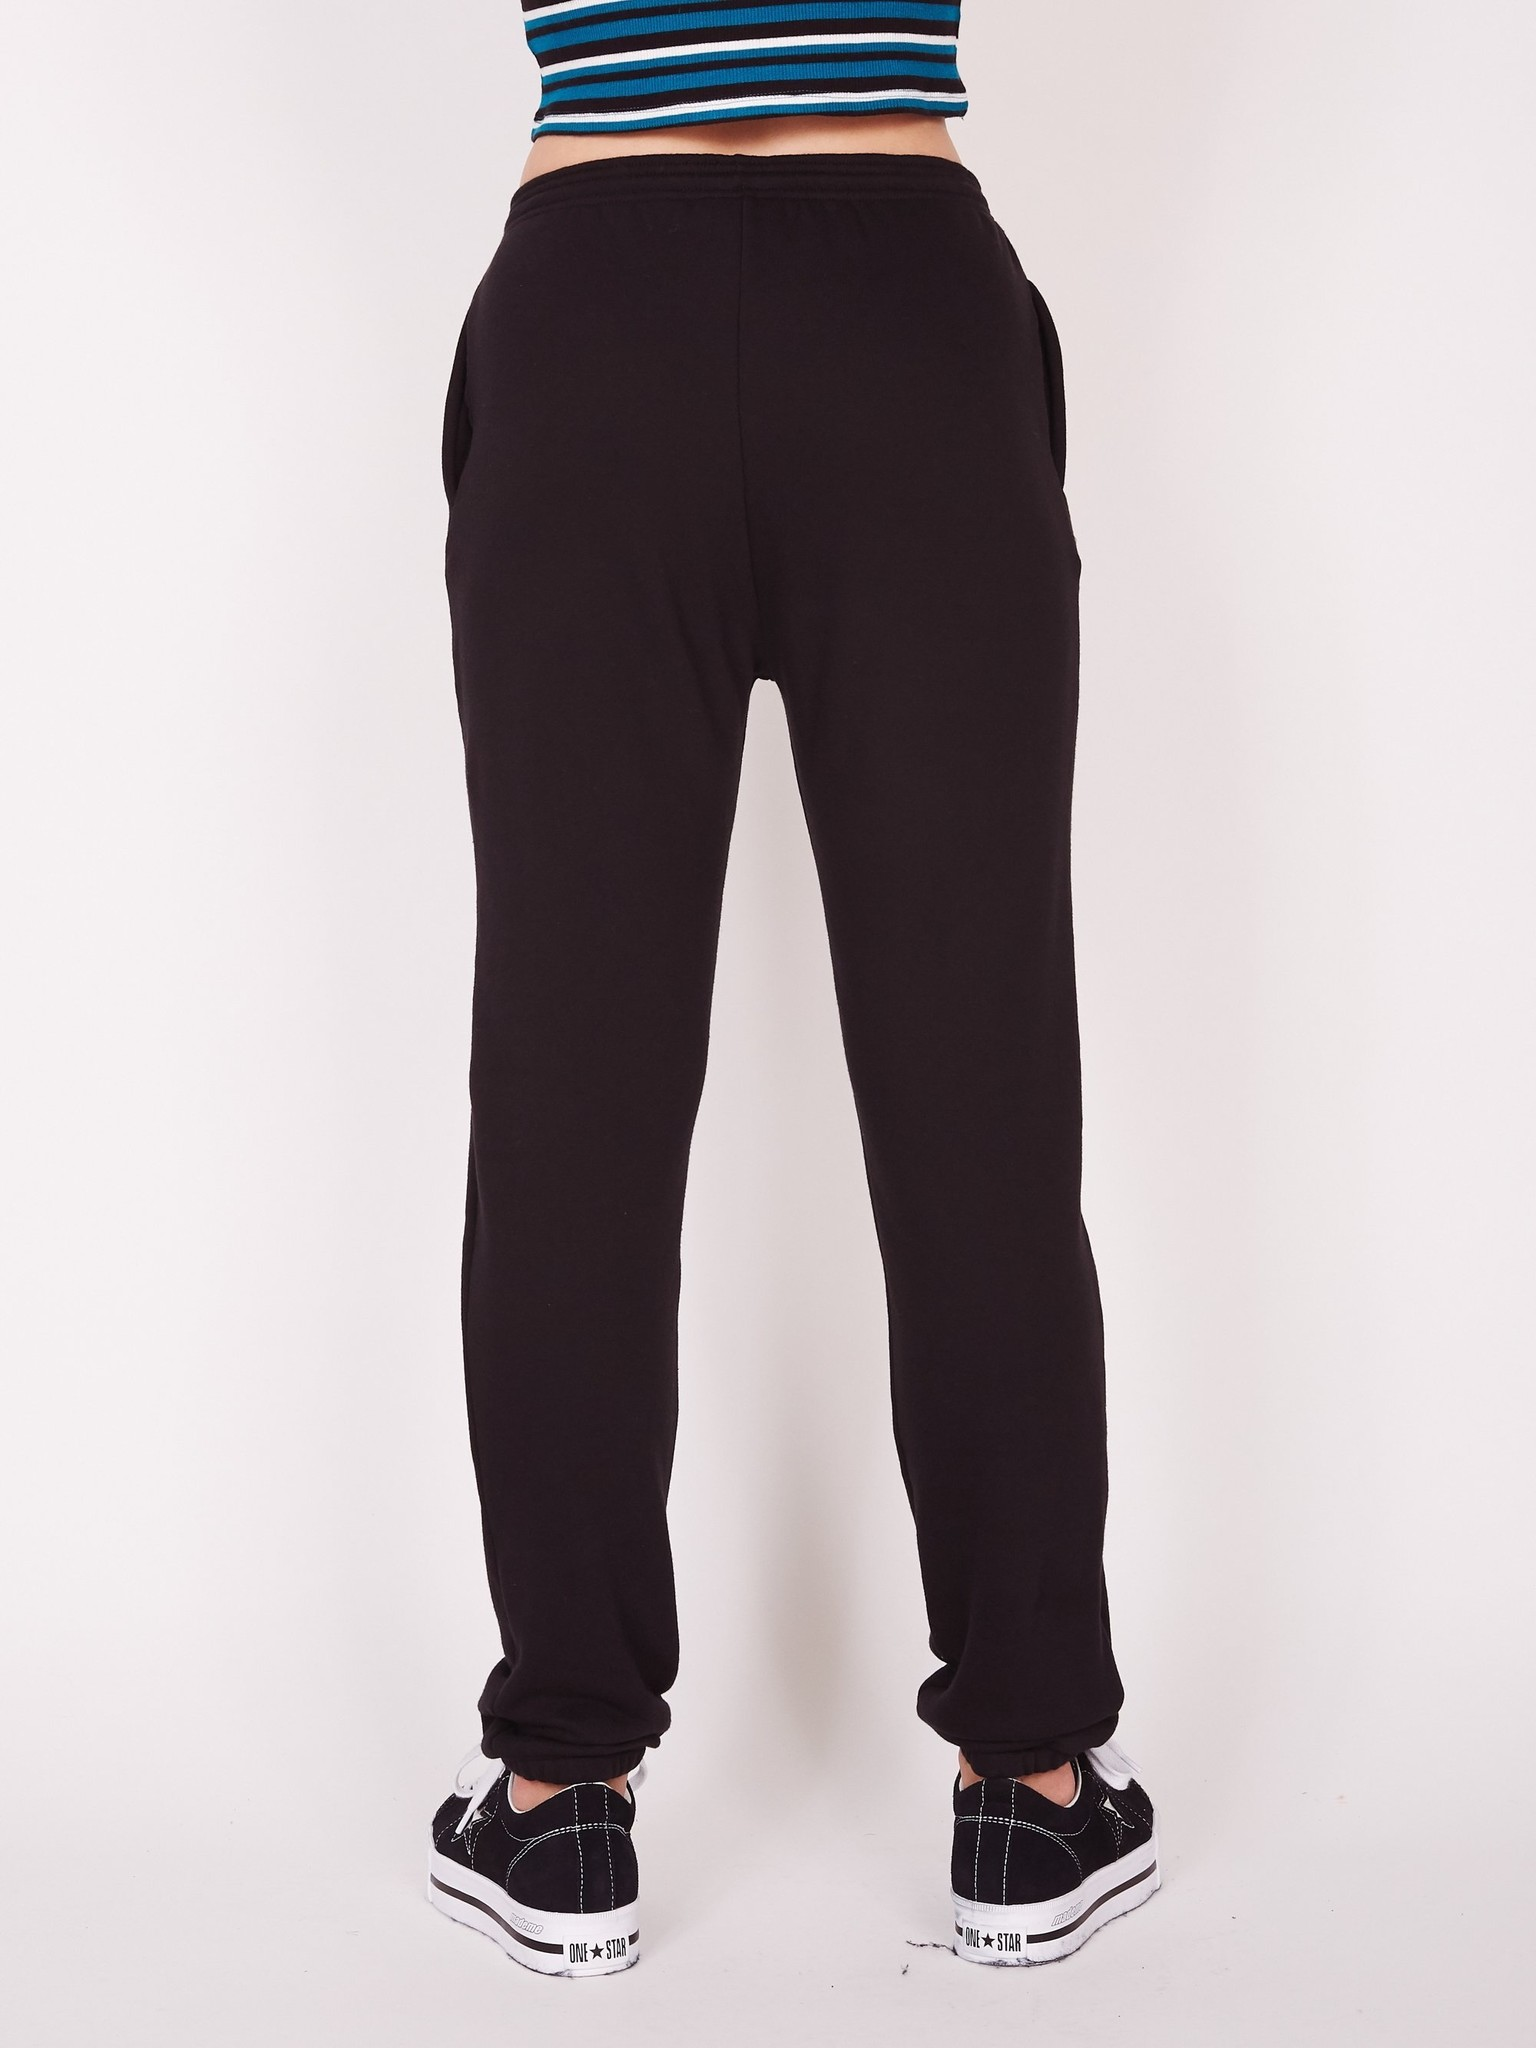 OBEY Chess King Delancey Sweatpant